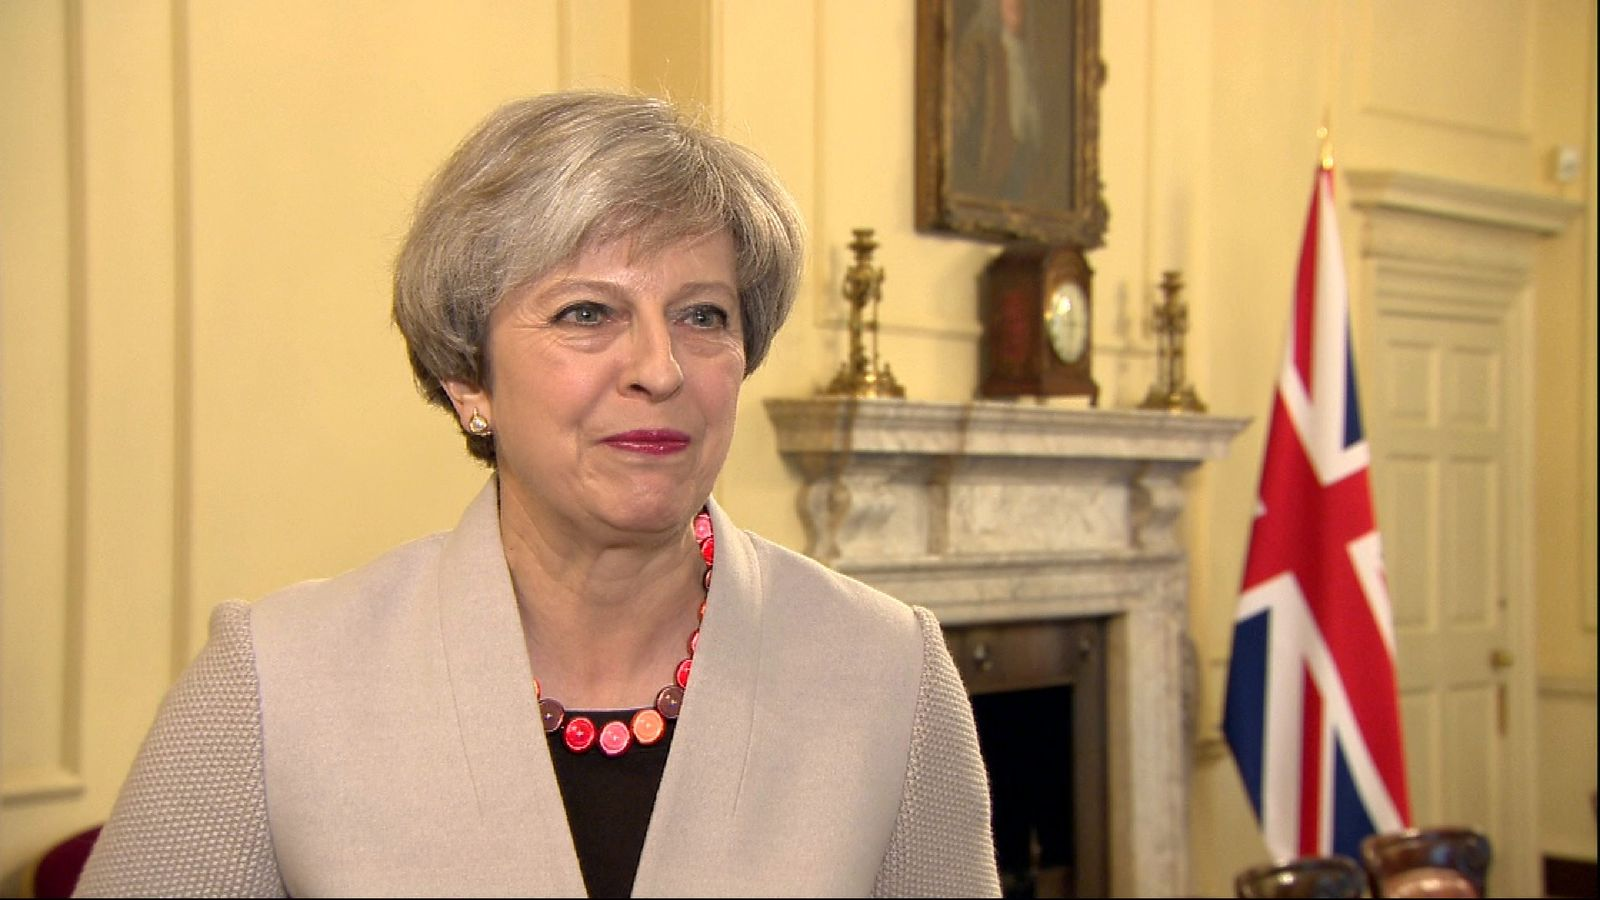 The Prime Minister offers her thanks for Prince Philip's work